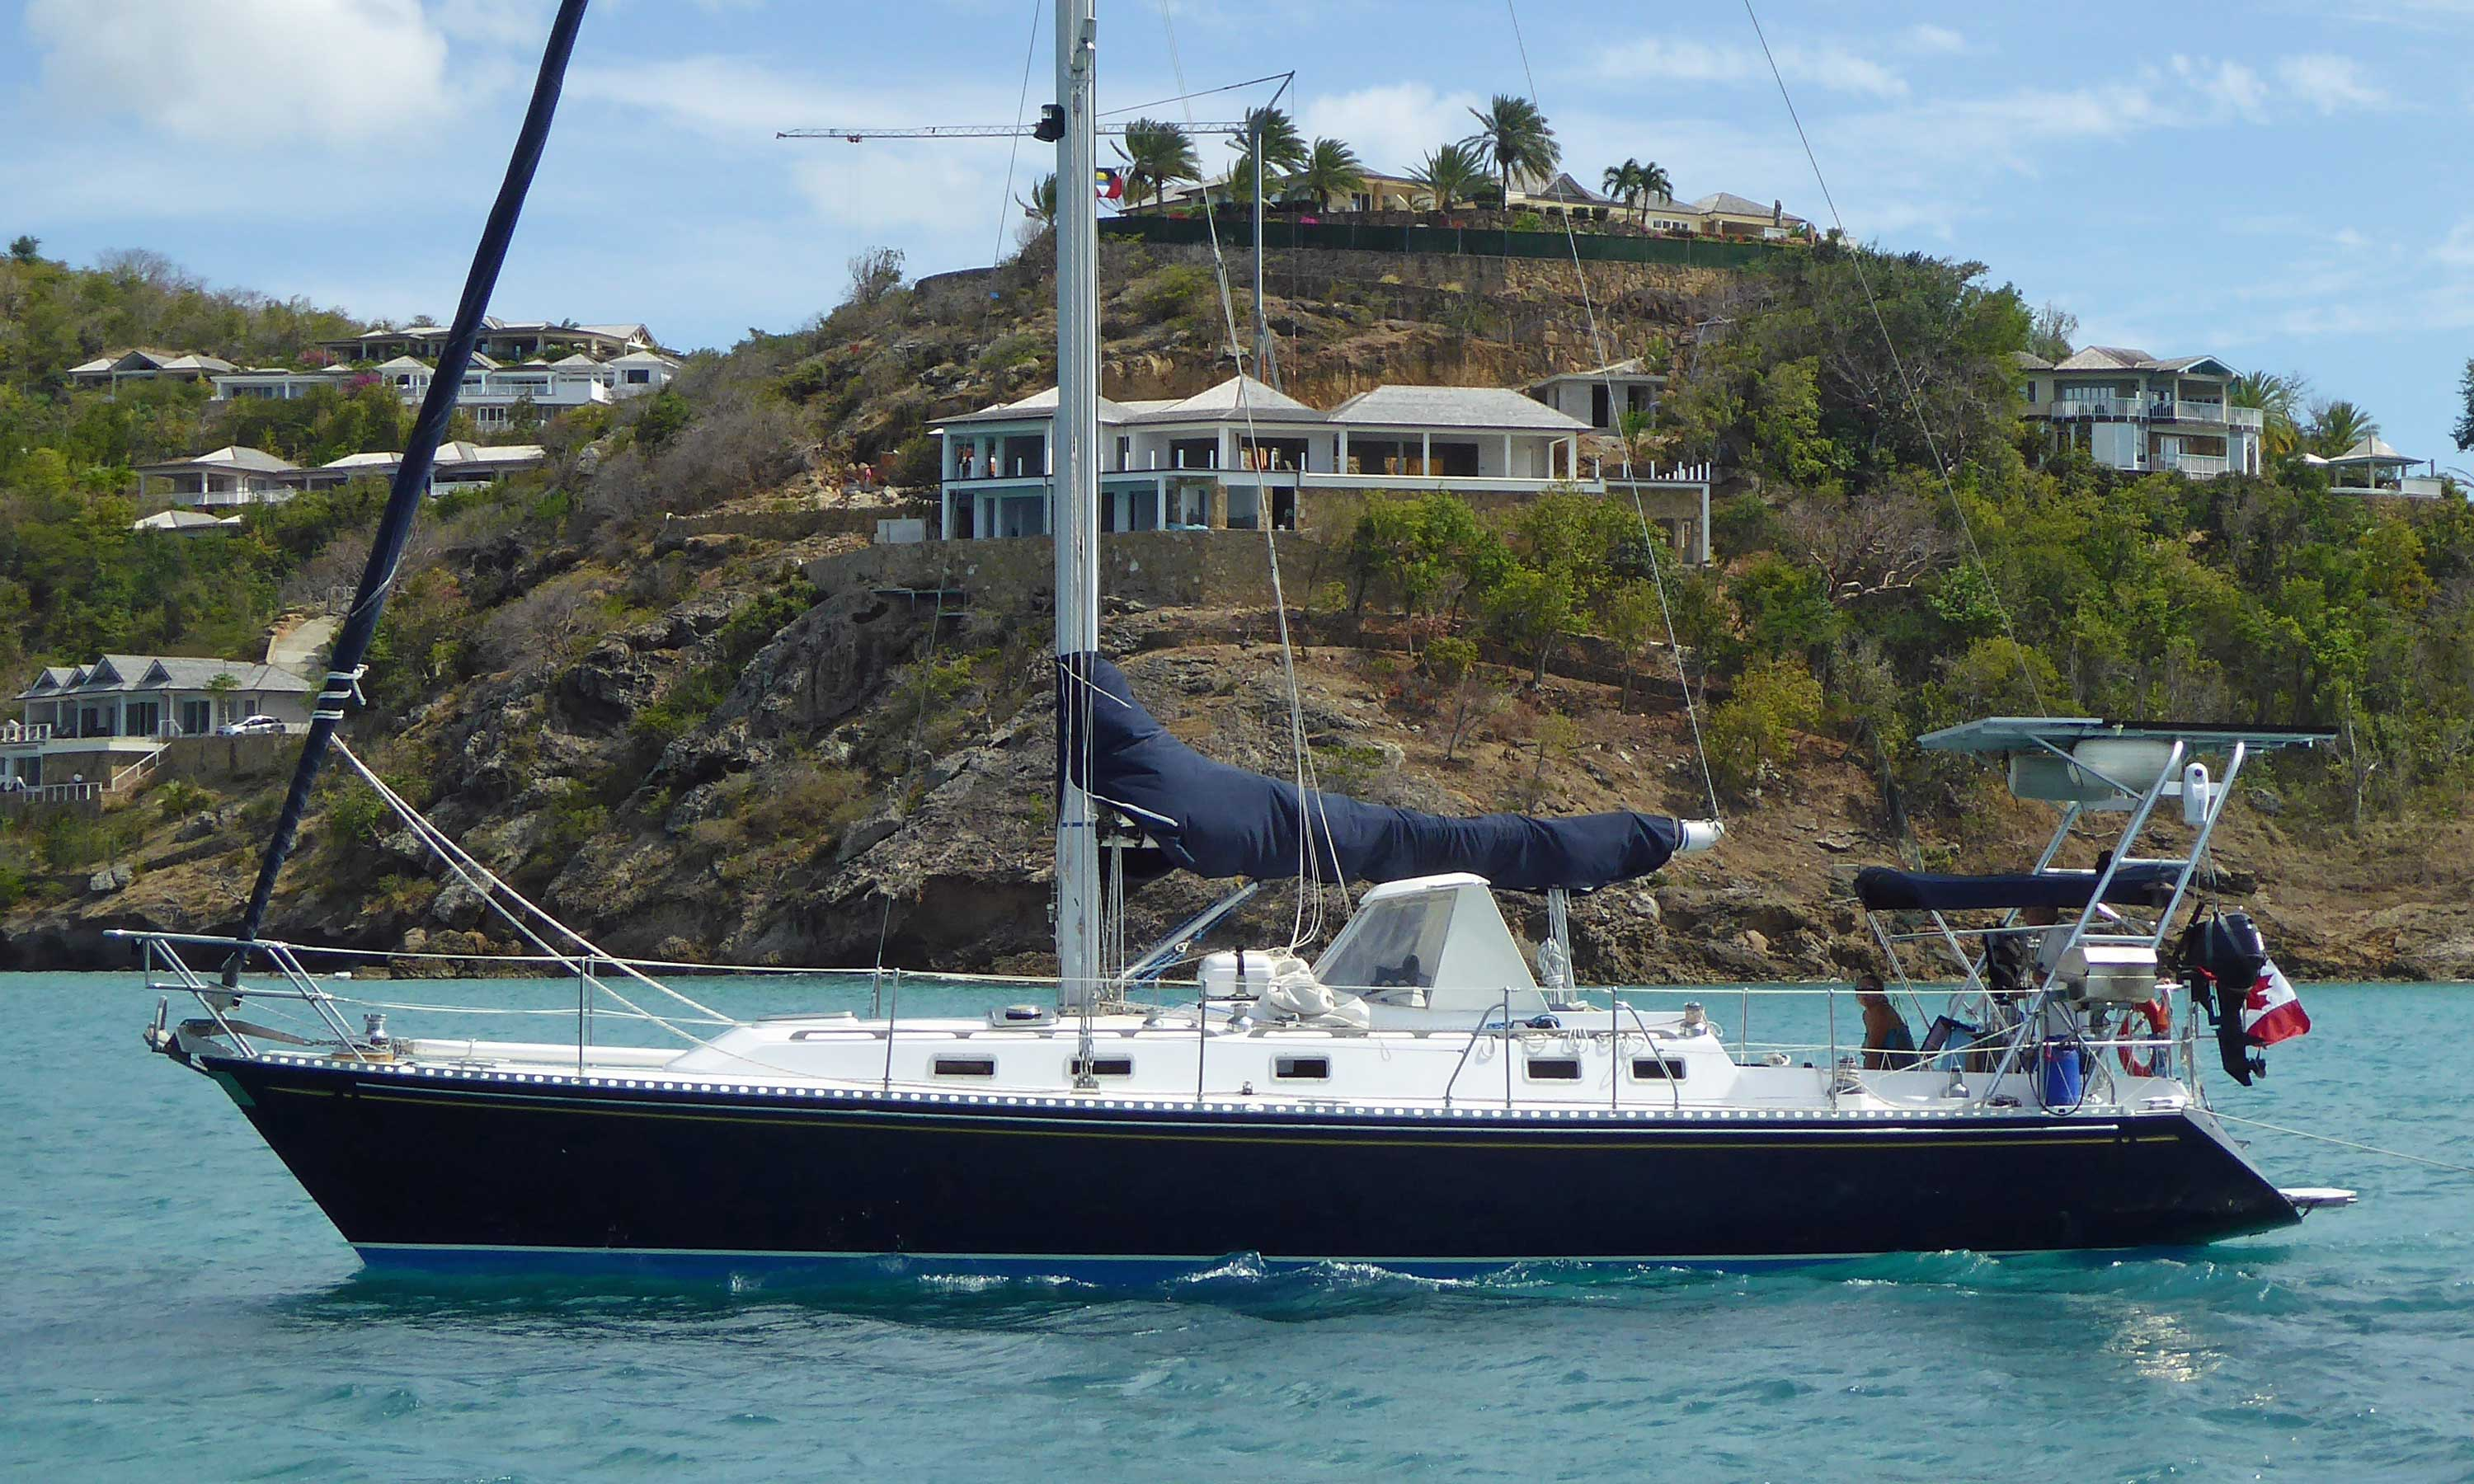 A Hylas 42 cruising sailboat